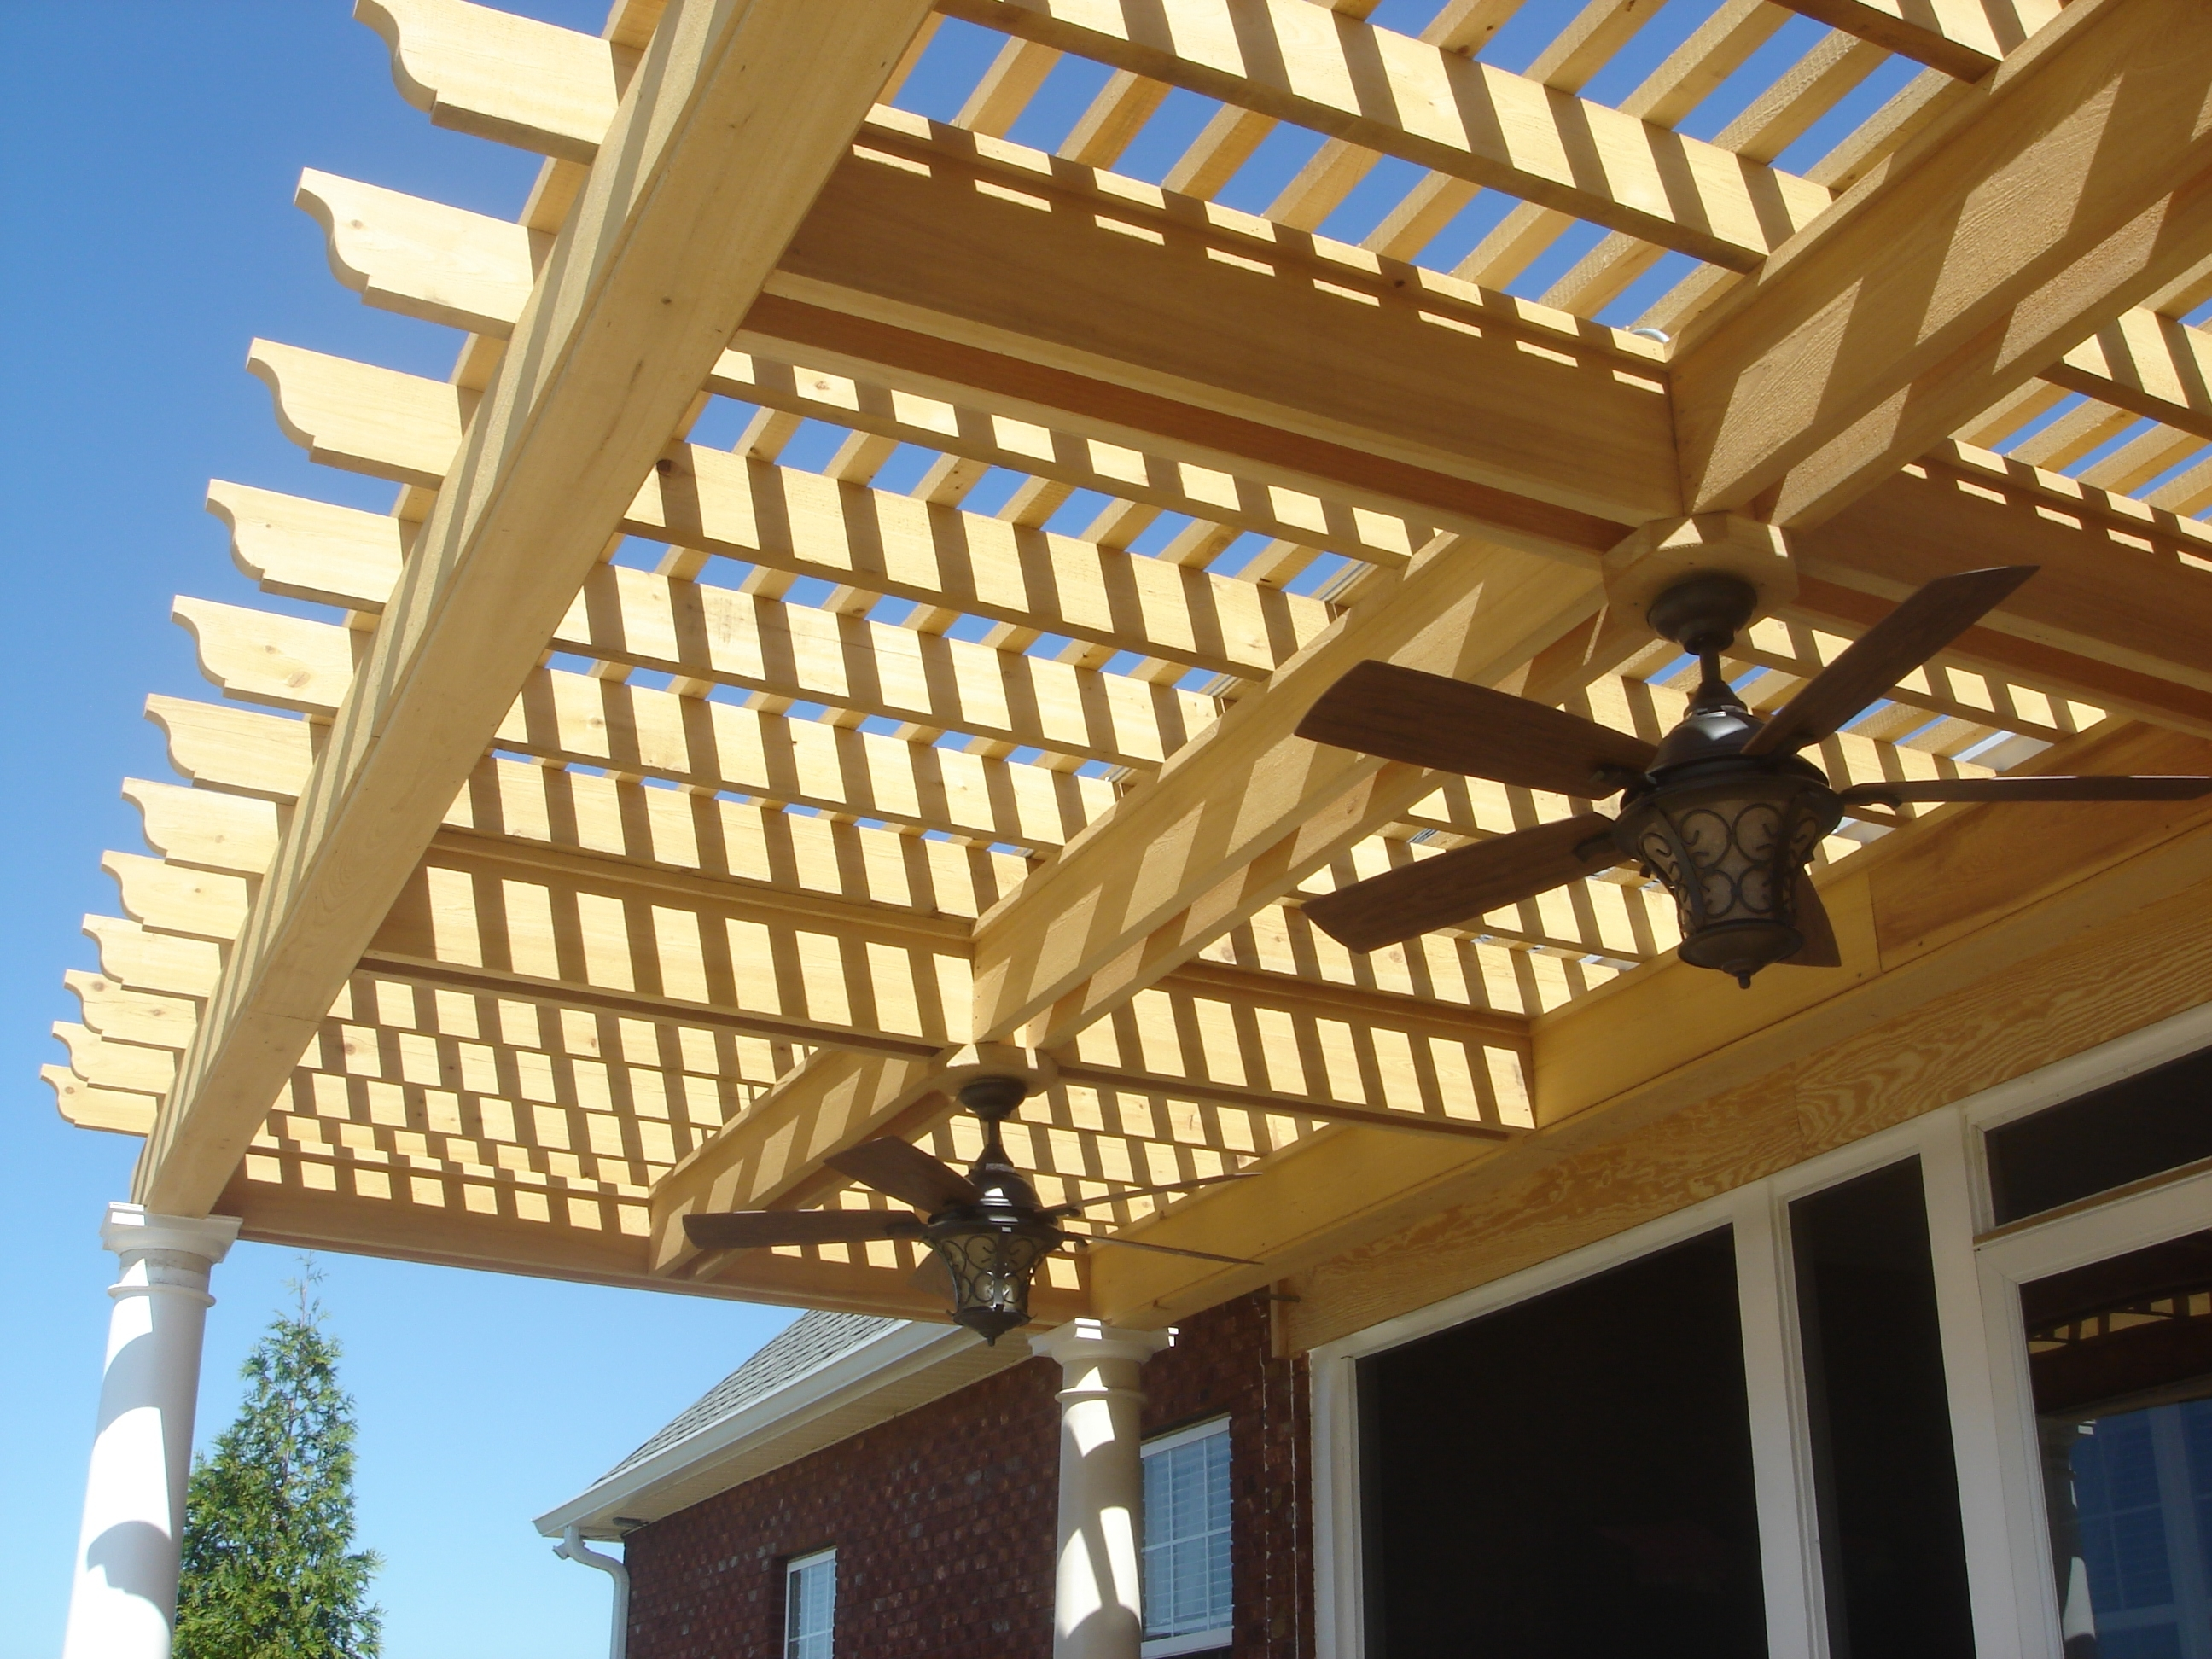 2018 How To Add Lights To A Deck, Screened Porch Or Pergolaarchadeck Intended For Outdoor Ceiling Fans Under Pergola (View 5 of 20)